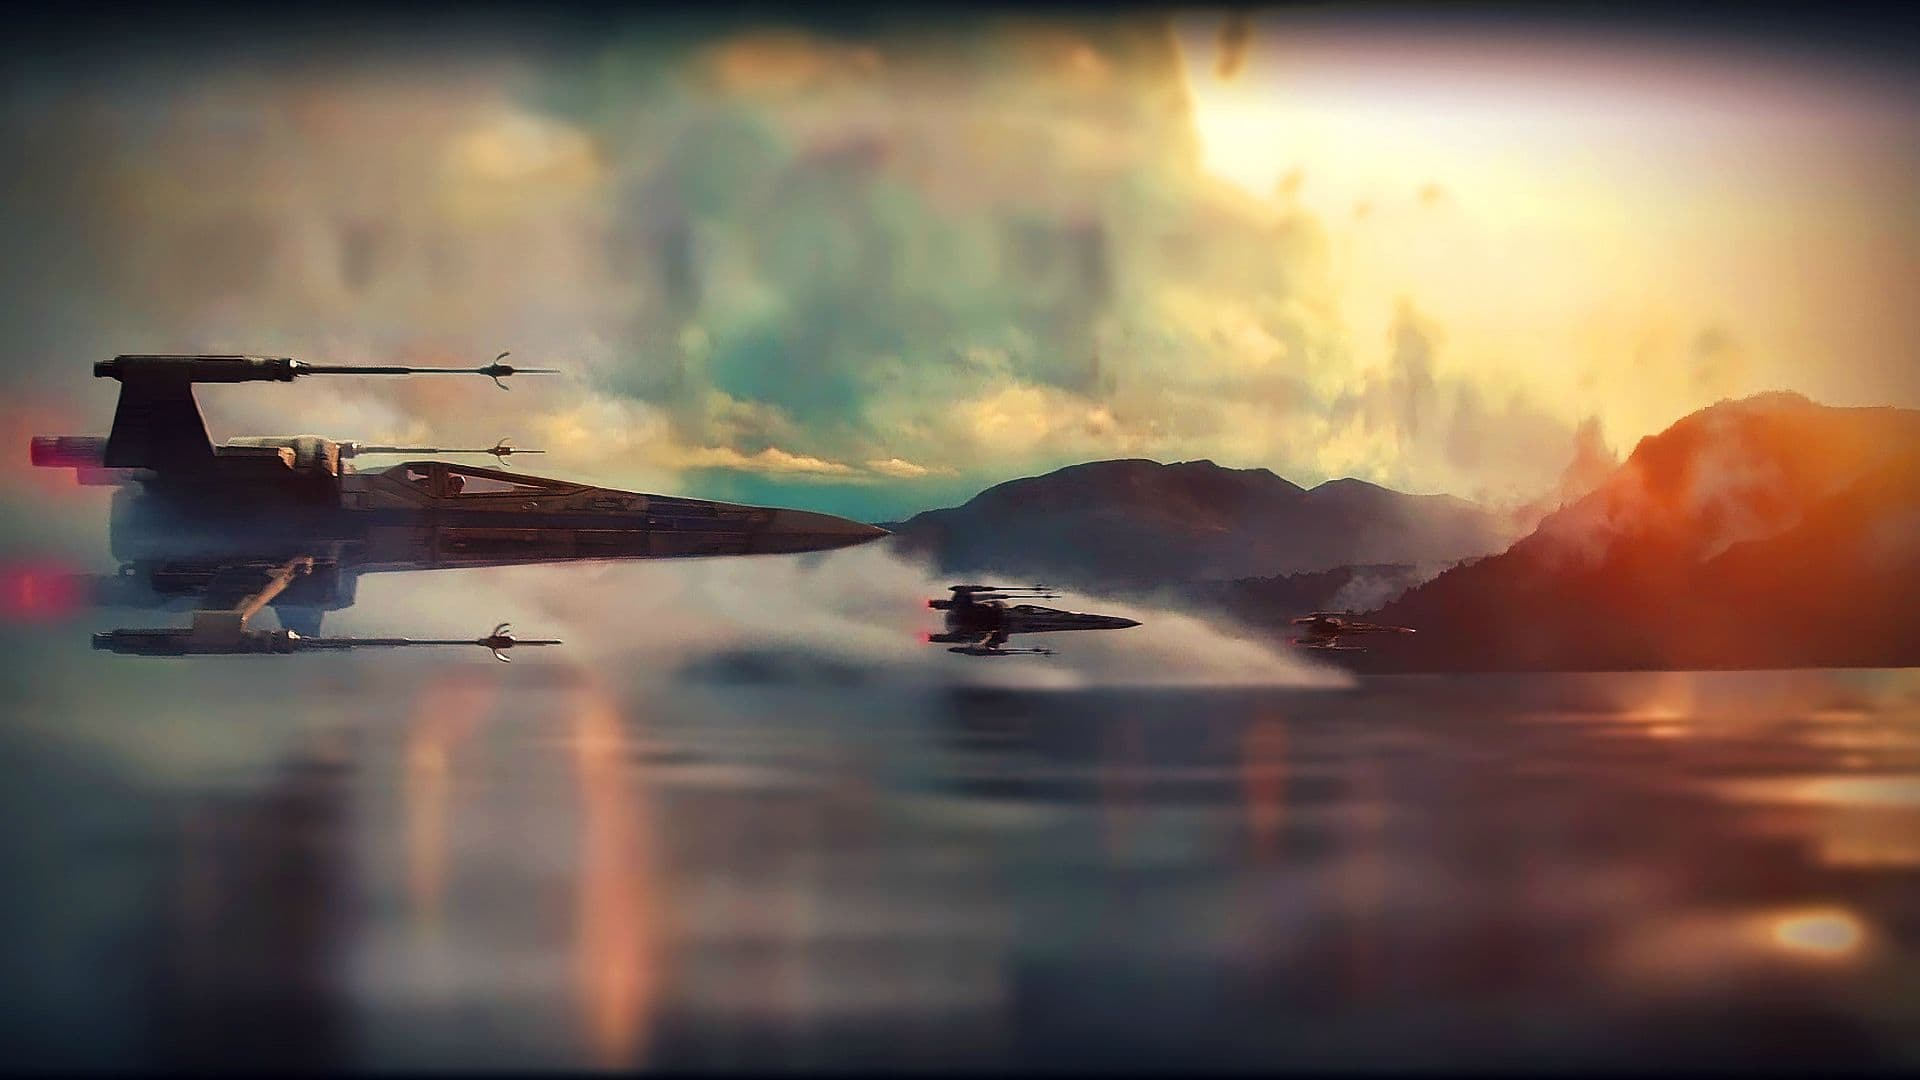 New Images for Star Wars Force Awakens